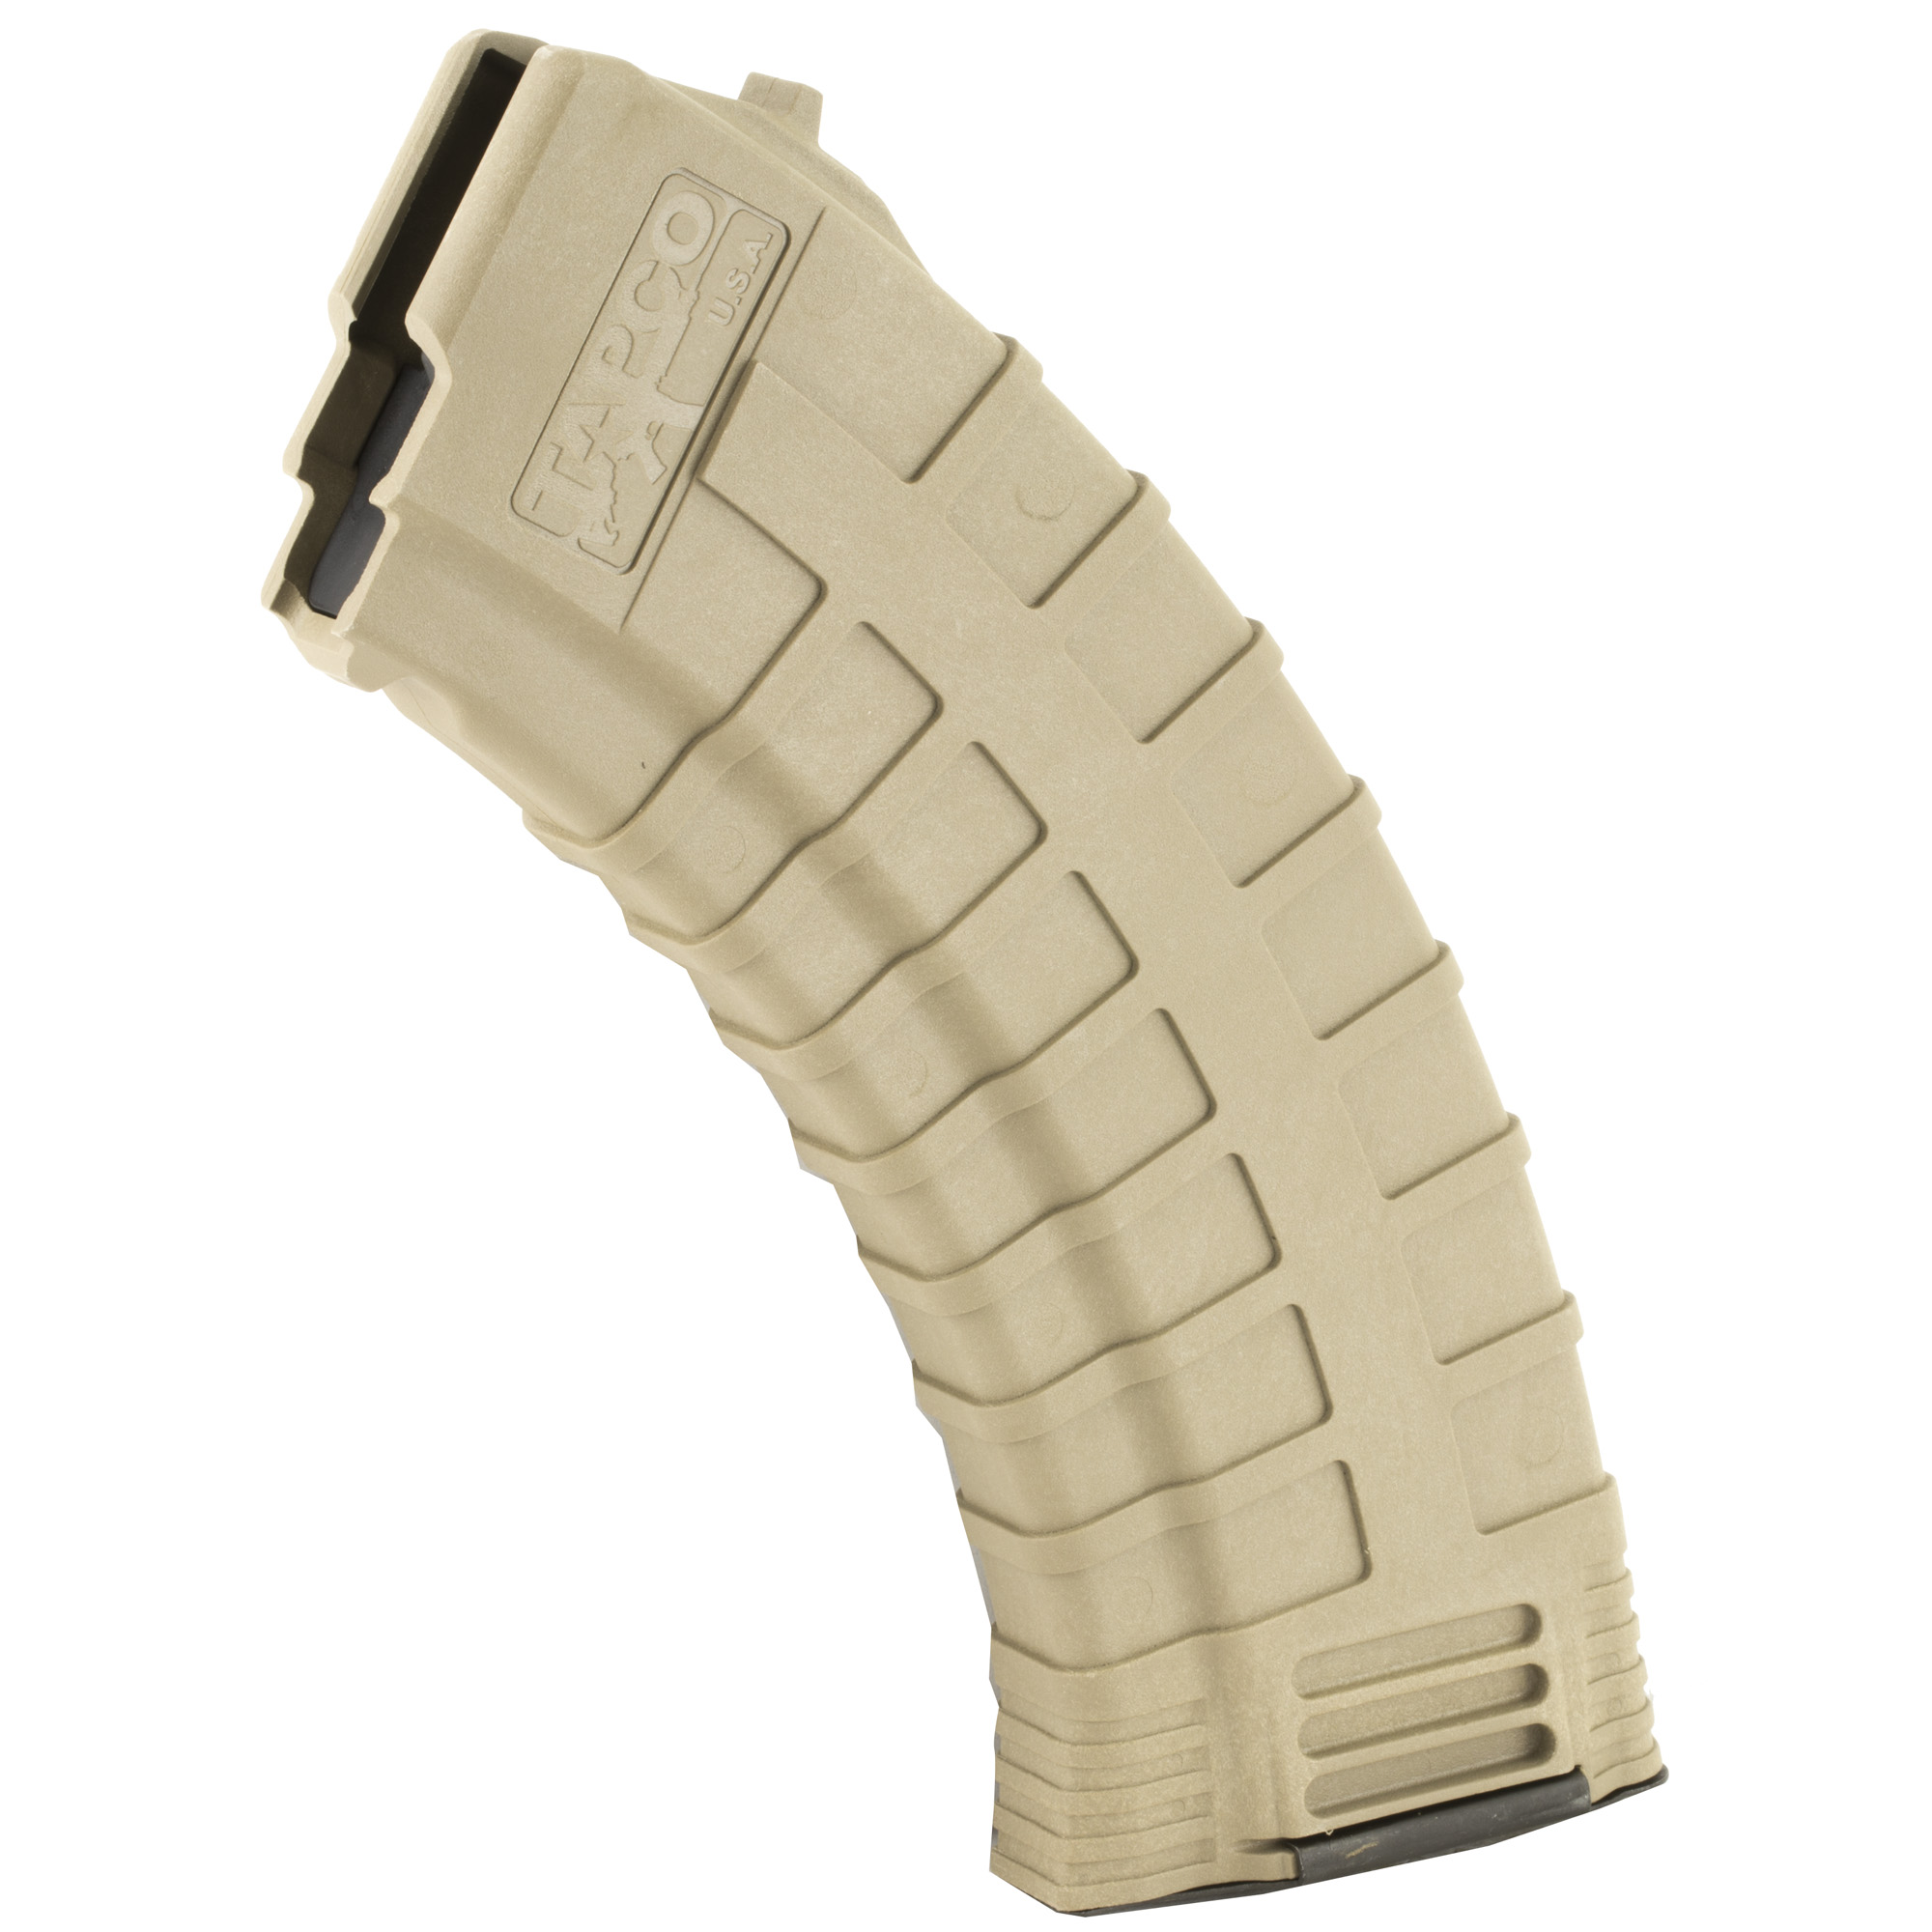 "The best two words to describe Tapco's AK 30rd magazine: ""rugged"" and ""reliable."" The reinforced composite material prevents corrosion while the heavy duty spring and anti-tilt follower ensure that every round will feed perfectly. Fits the AK-47 using 7.62x39mm ammunition. When your Kalashnikov needs a magazine that can handle a beating"" no questions asked"" the Tapco 30rd AK Magazine is the only logical choice."